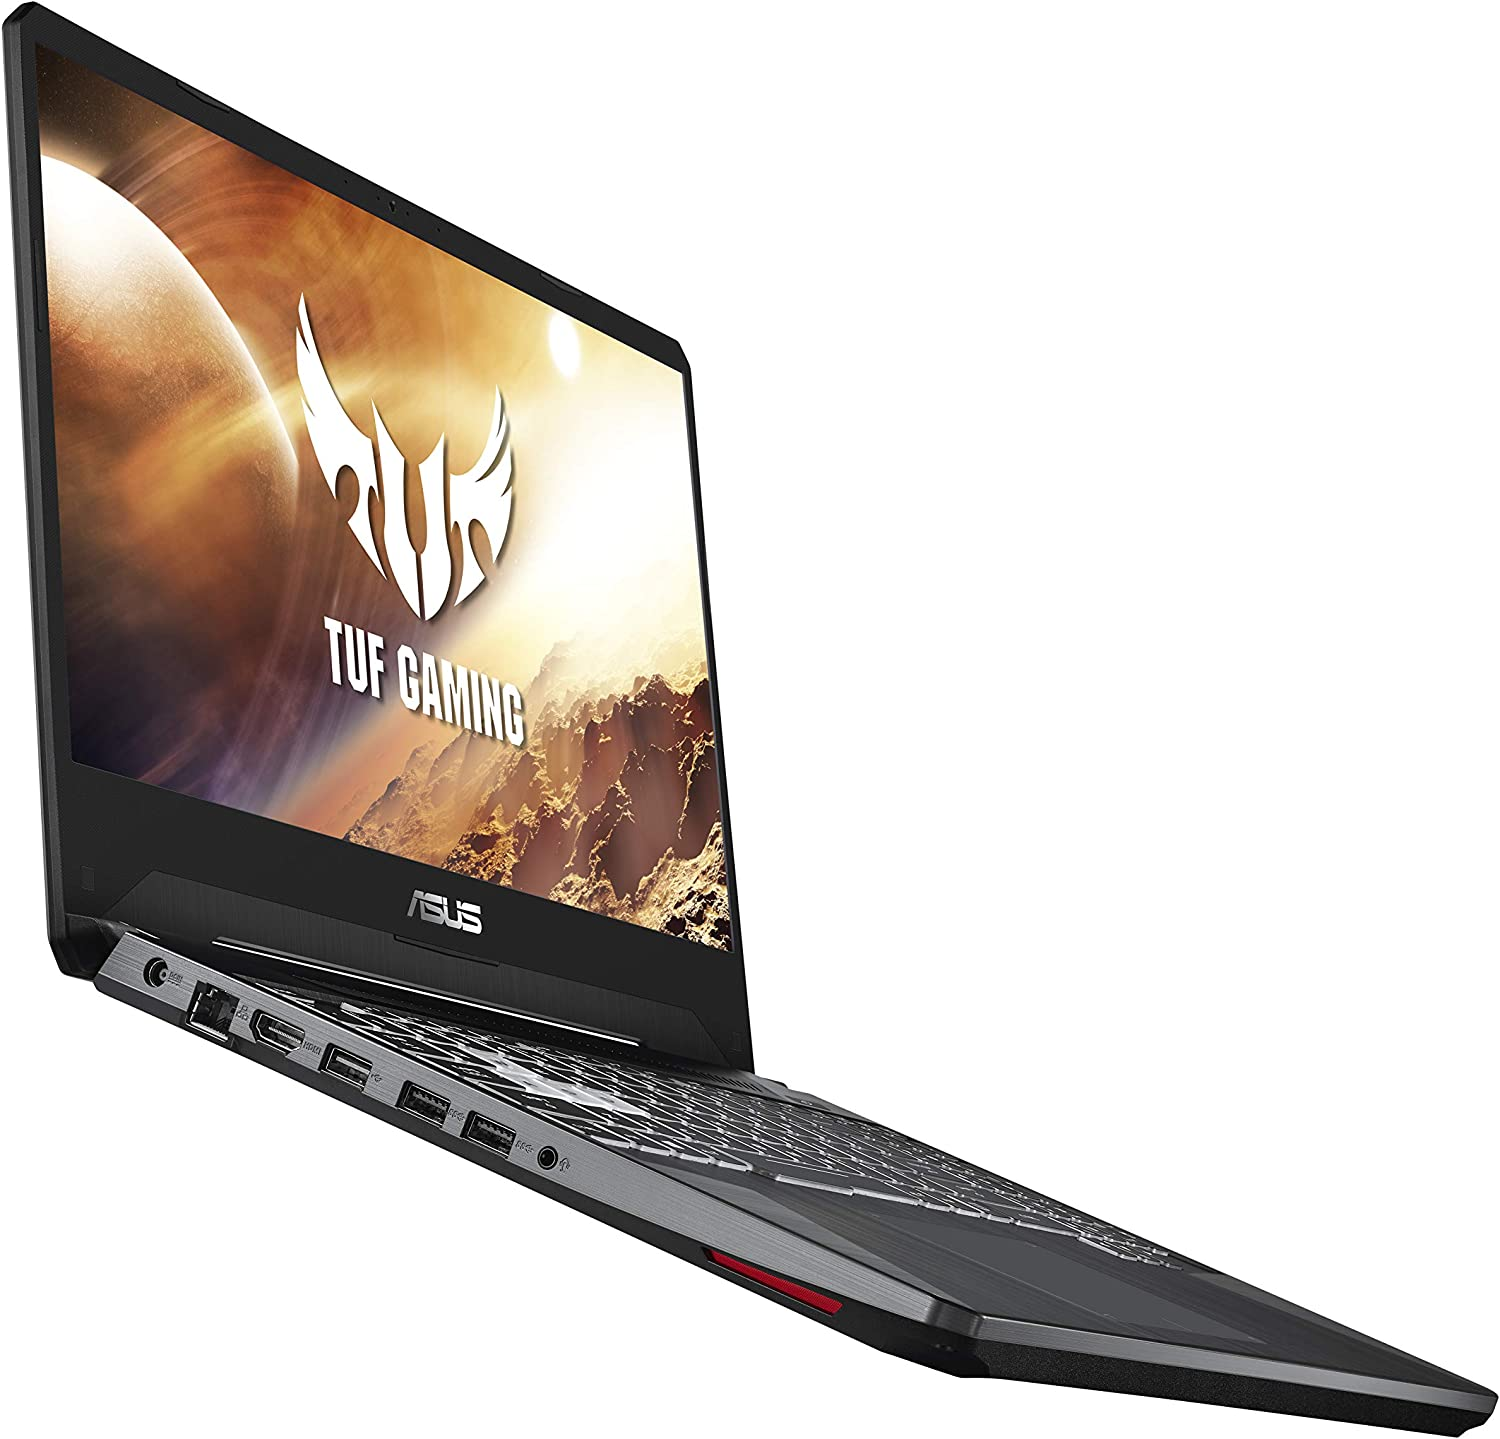 "ASUS TUF Gaming Laptop, 15.6"" 144Hz Full HD IPS-Type, AMD Ryzen 7 3750H, GeForce GTX 1650, 8GB DDR4, 512GB PCIe SSD, Gigabit Wi-Fi 5, Windows 10 Home, FX505DT-ES73"